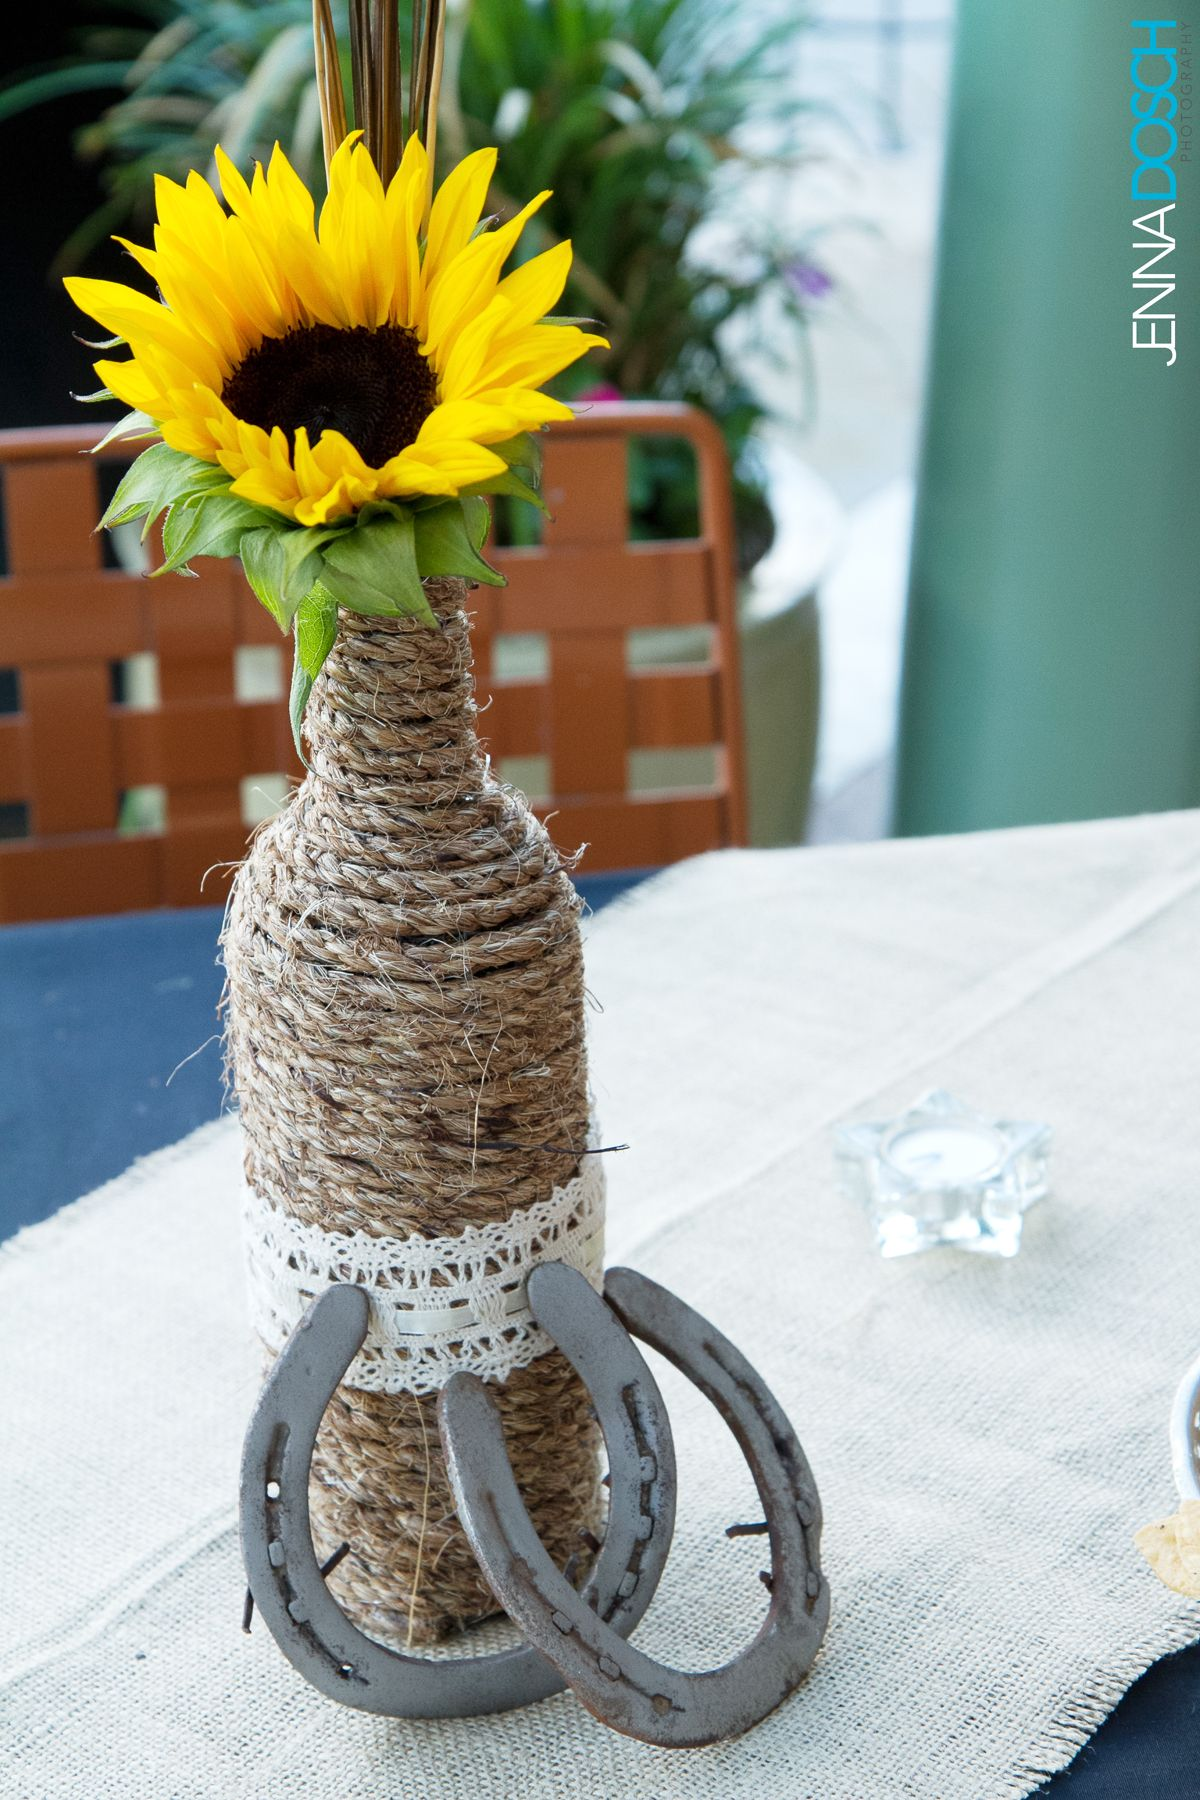 25 Creative Floral Designs with Sunflowers, Sunny Summer ...